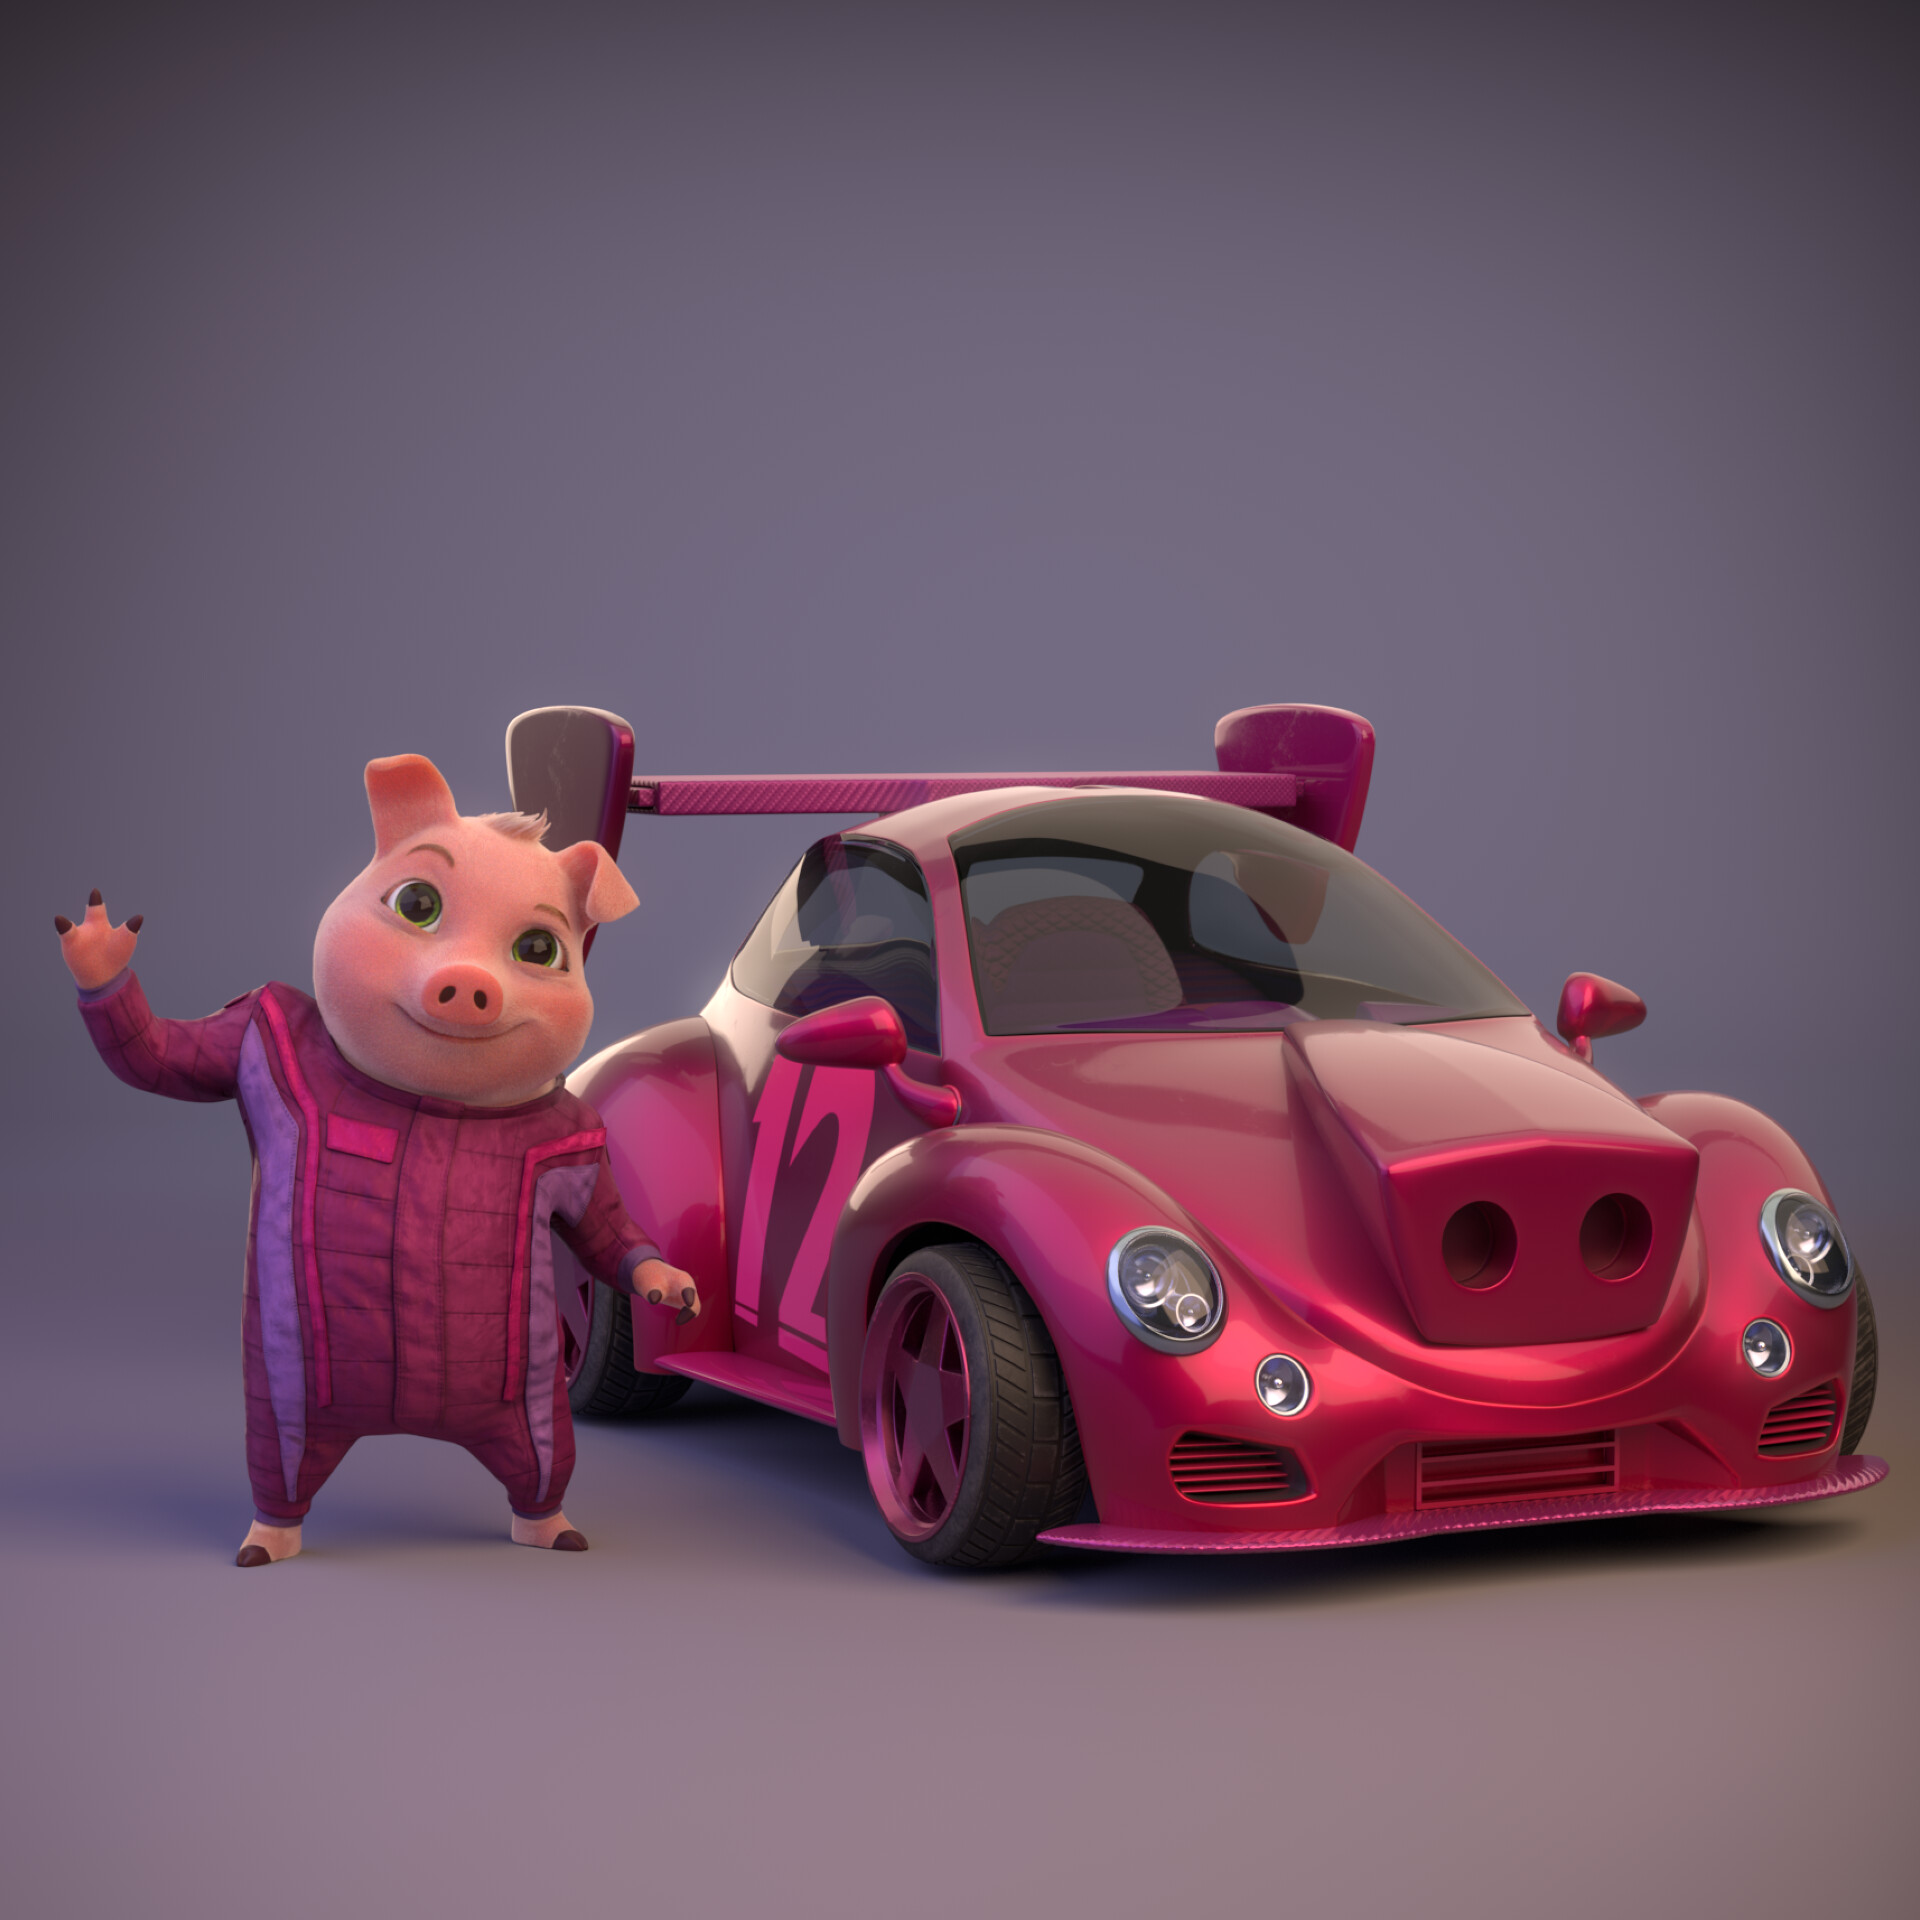 Pig and vehicle